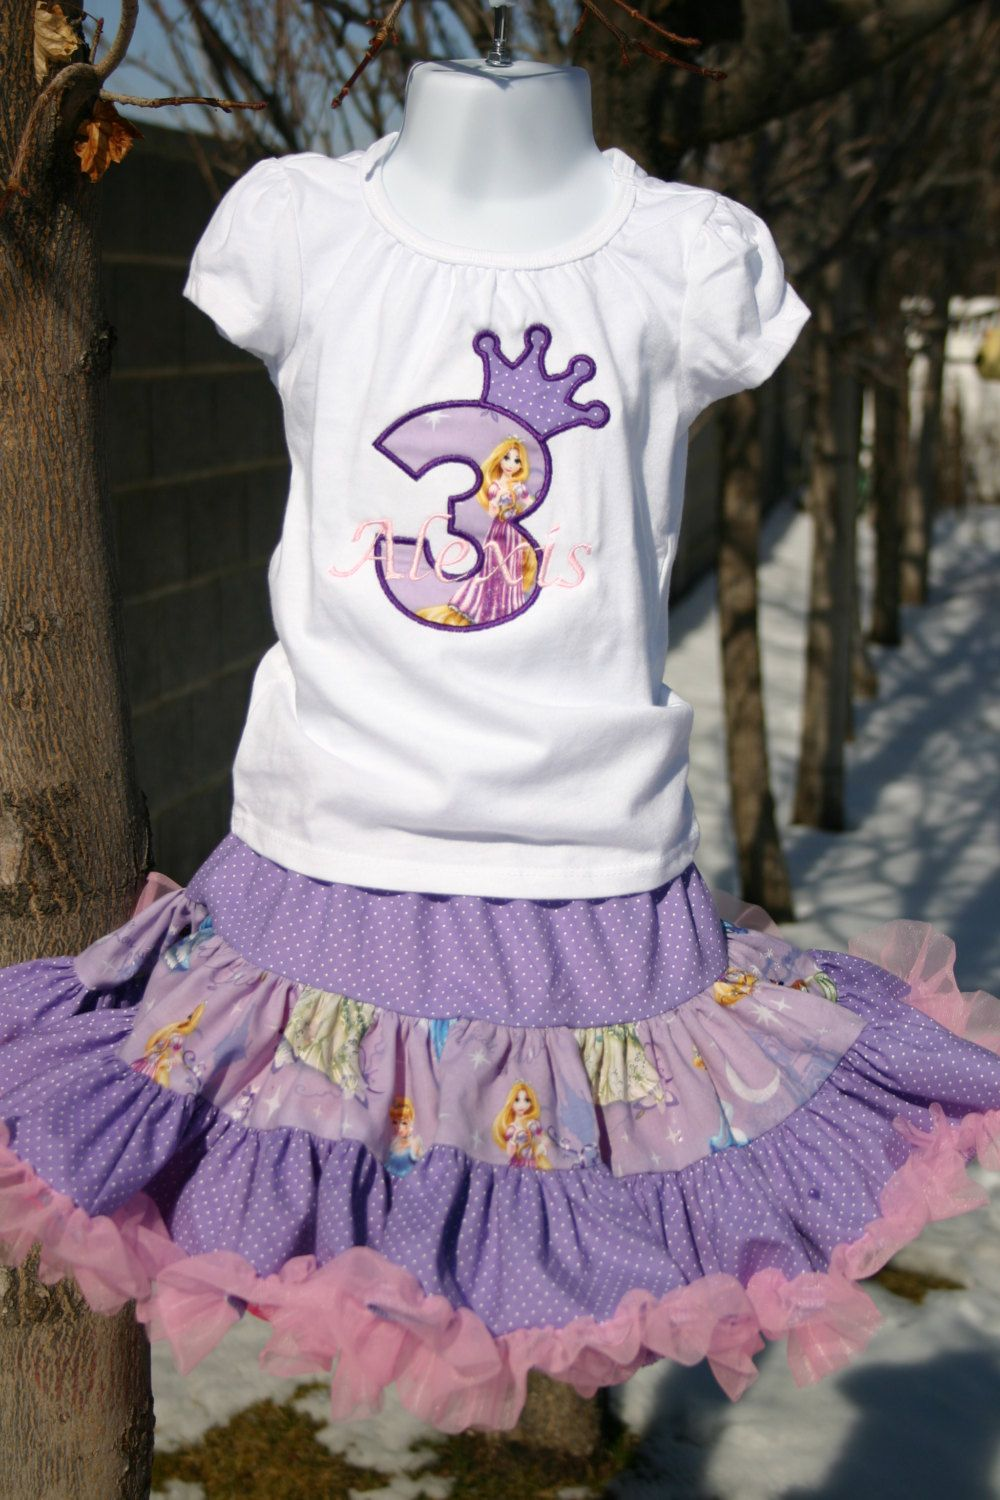 Aris Angels Girls Tangeled Rapunzel Birthday Outfit Monogrammed Personalized Shirt Full Twirling Skirt 7000 Via Etsy